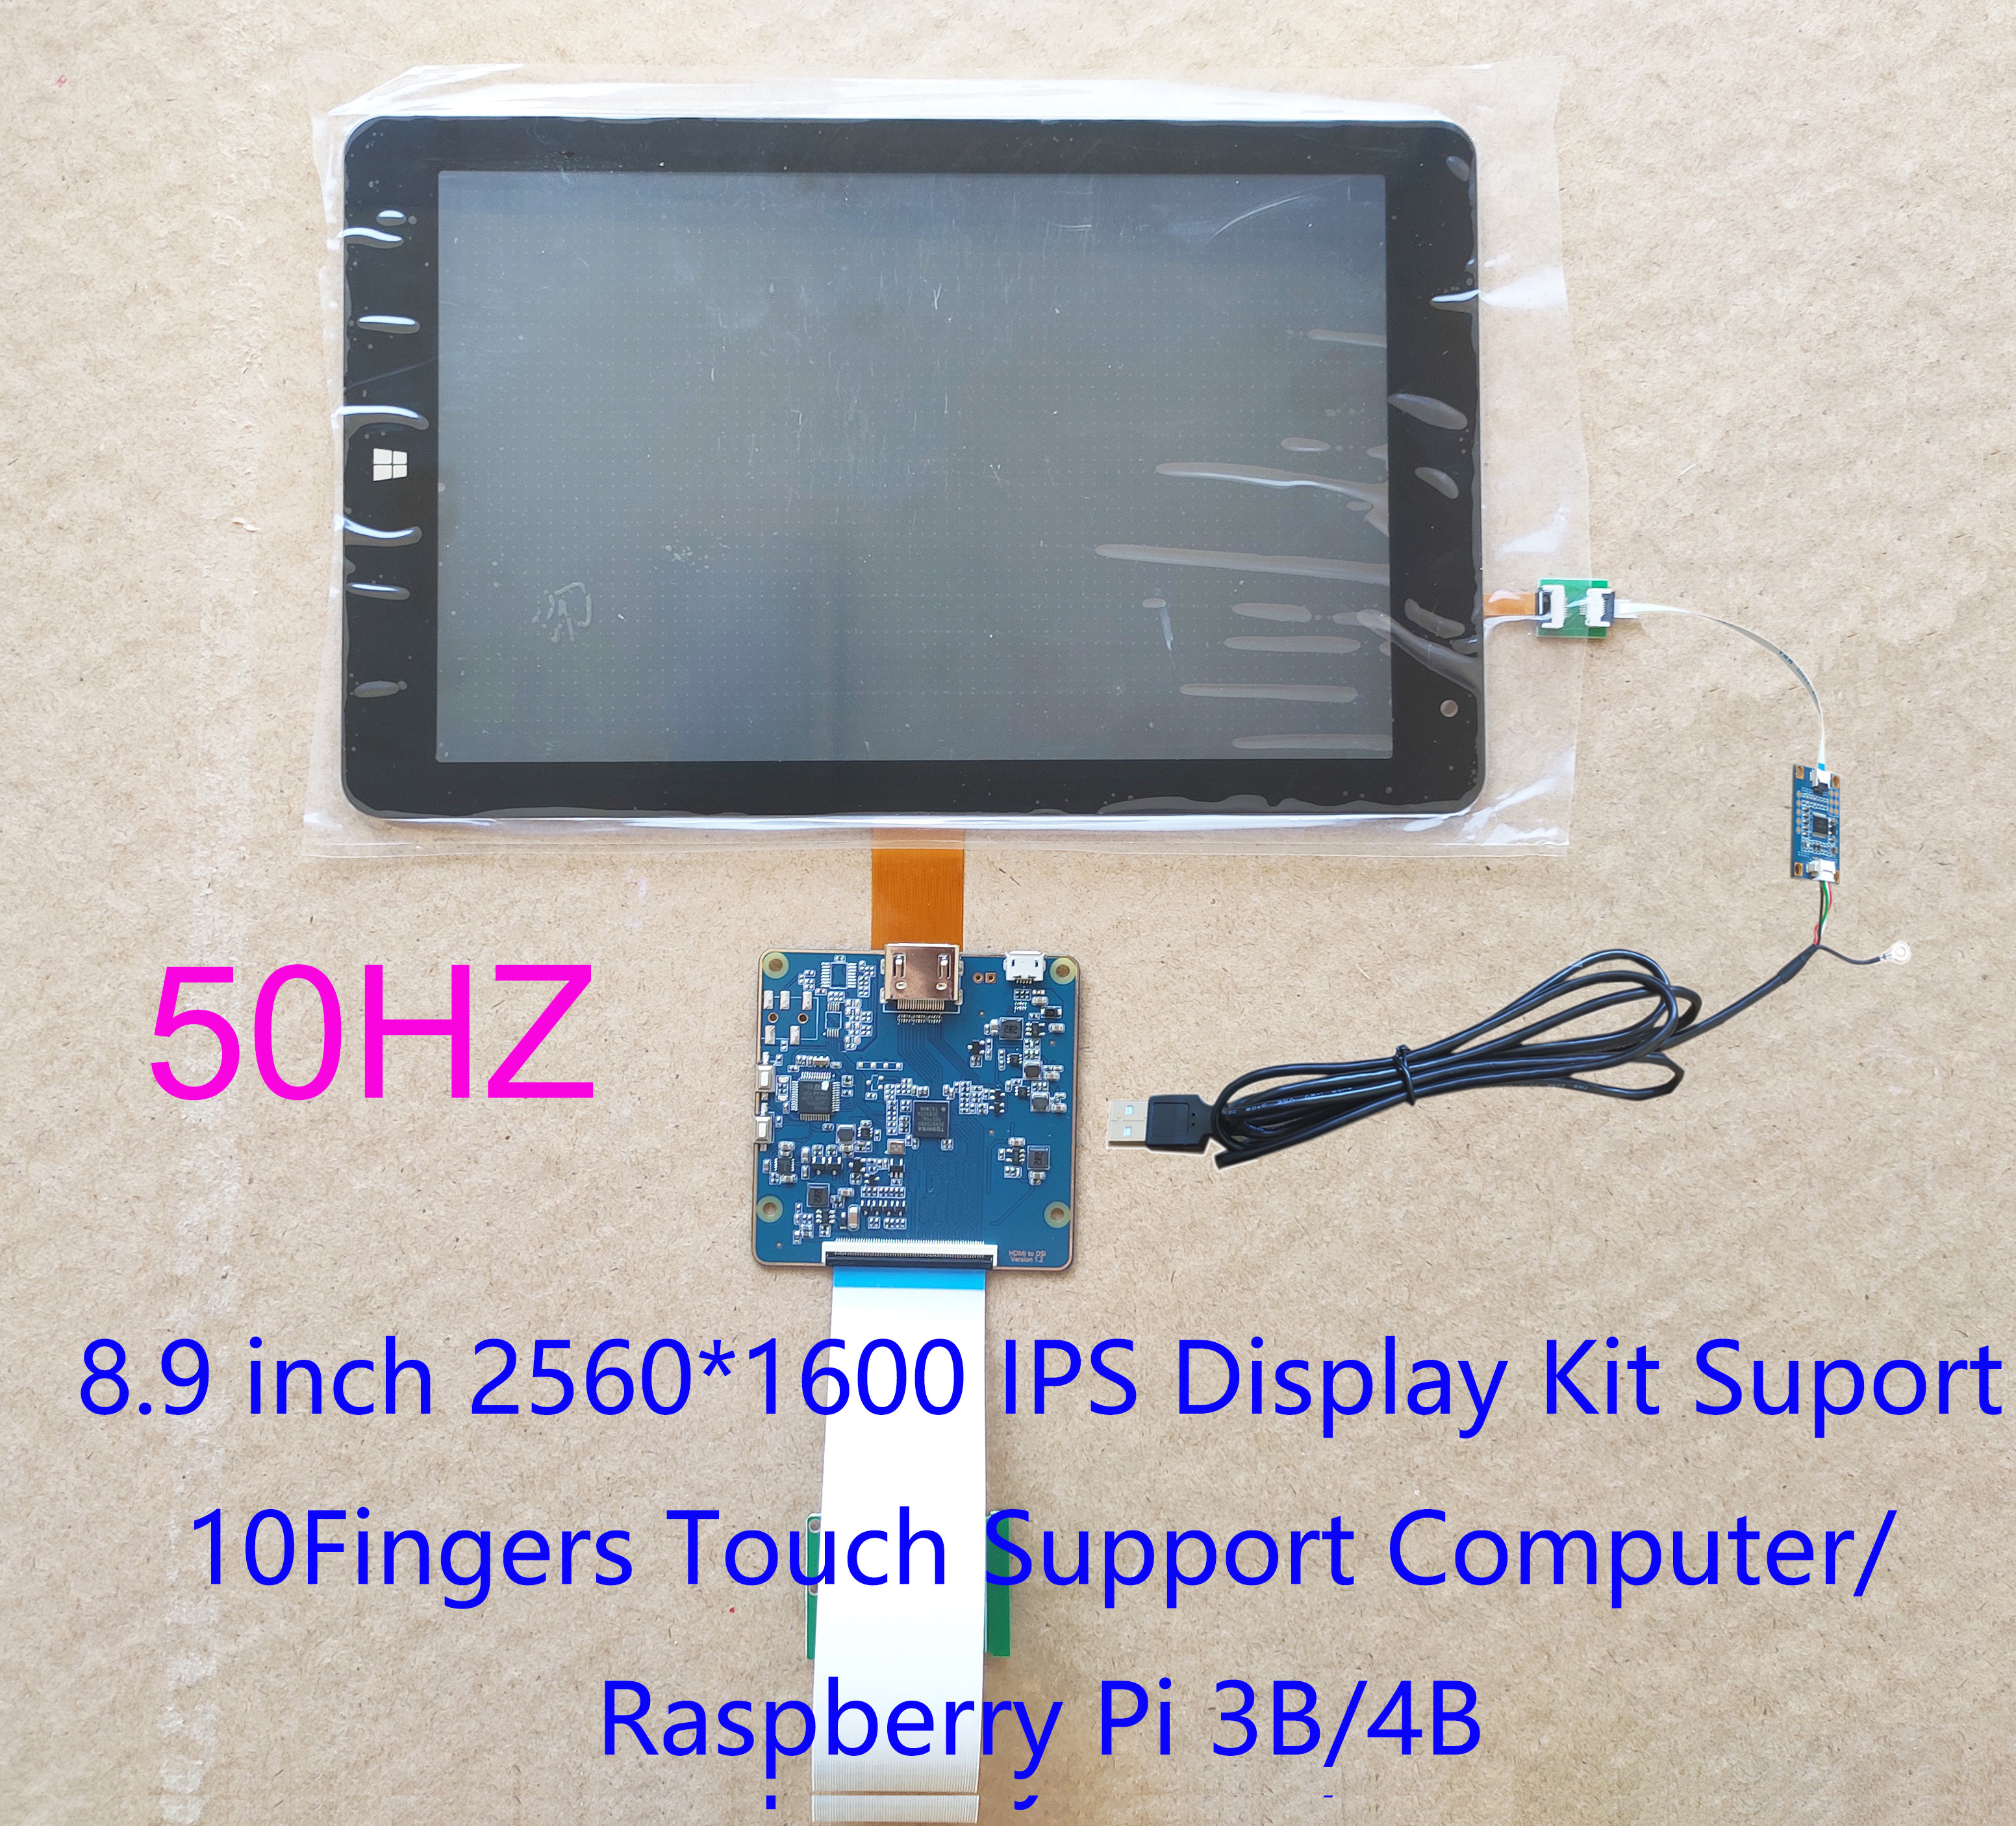 8.9 inch TFTMD089030 2560*1600 2K HD <font><b>display</b></font> kit MIPI To HDMI Supports <font><b>Raspberry</b></font> <font><b>Pi</b></font> 3/4 USB <font><b>Capacitive</b></font> Touch Screen Digitizer image